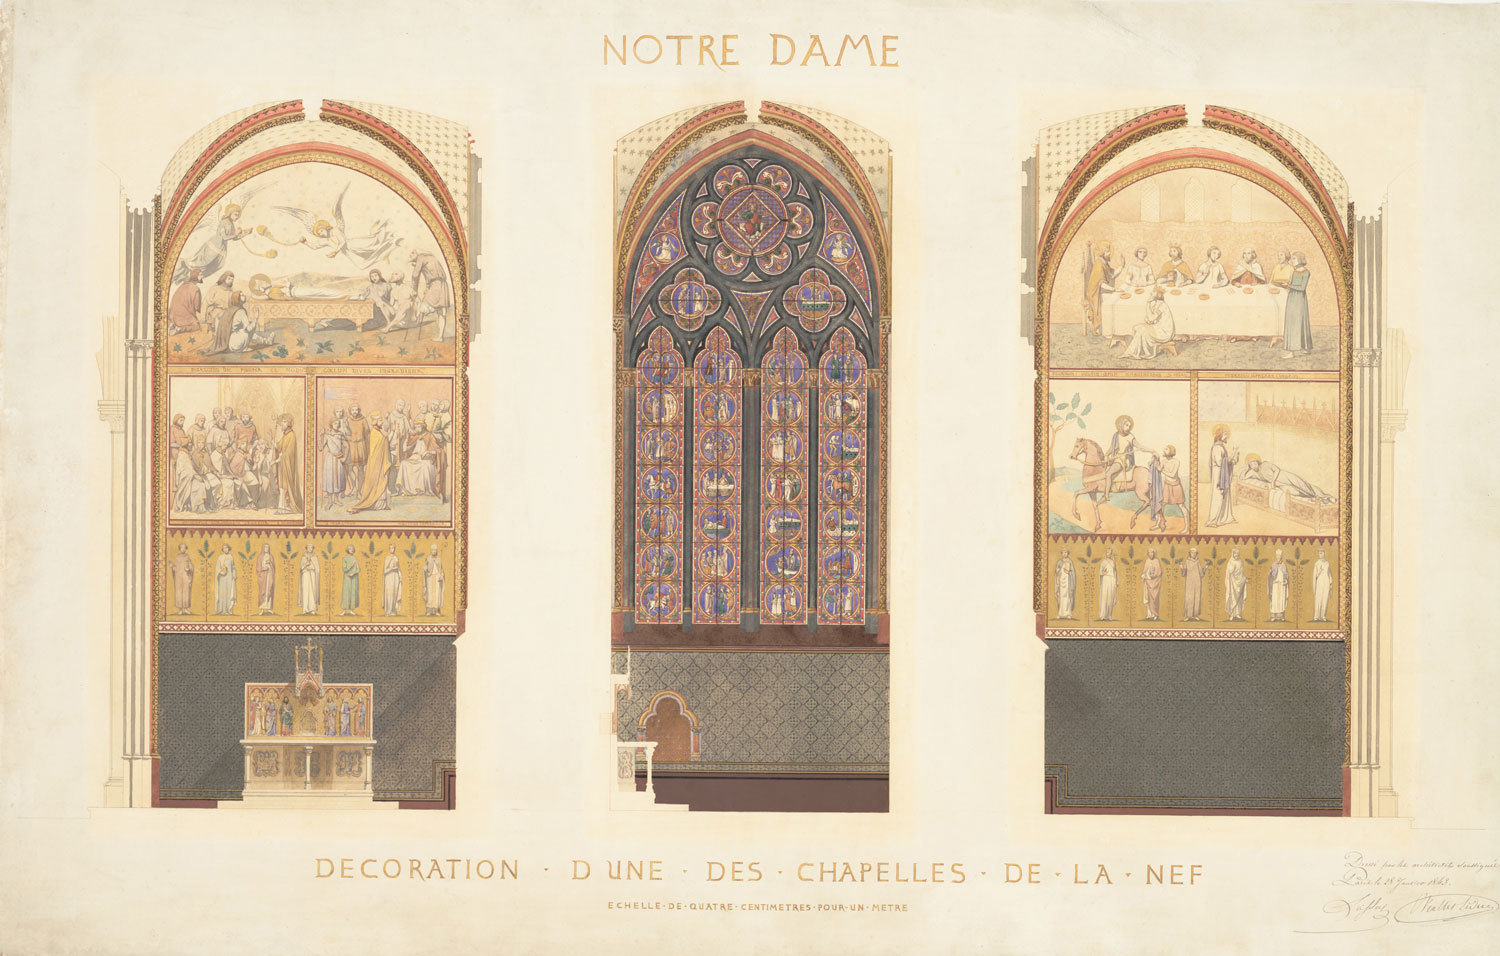 Plan for the Renovation of a Chapel in the Nave of the Cathedral of Notre-Dame, Paris,1843, Eugène-Emmanuel Viollet-le-Duc, Metropolitan Museum of Art, CC0